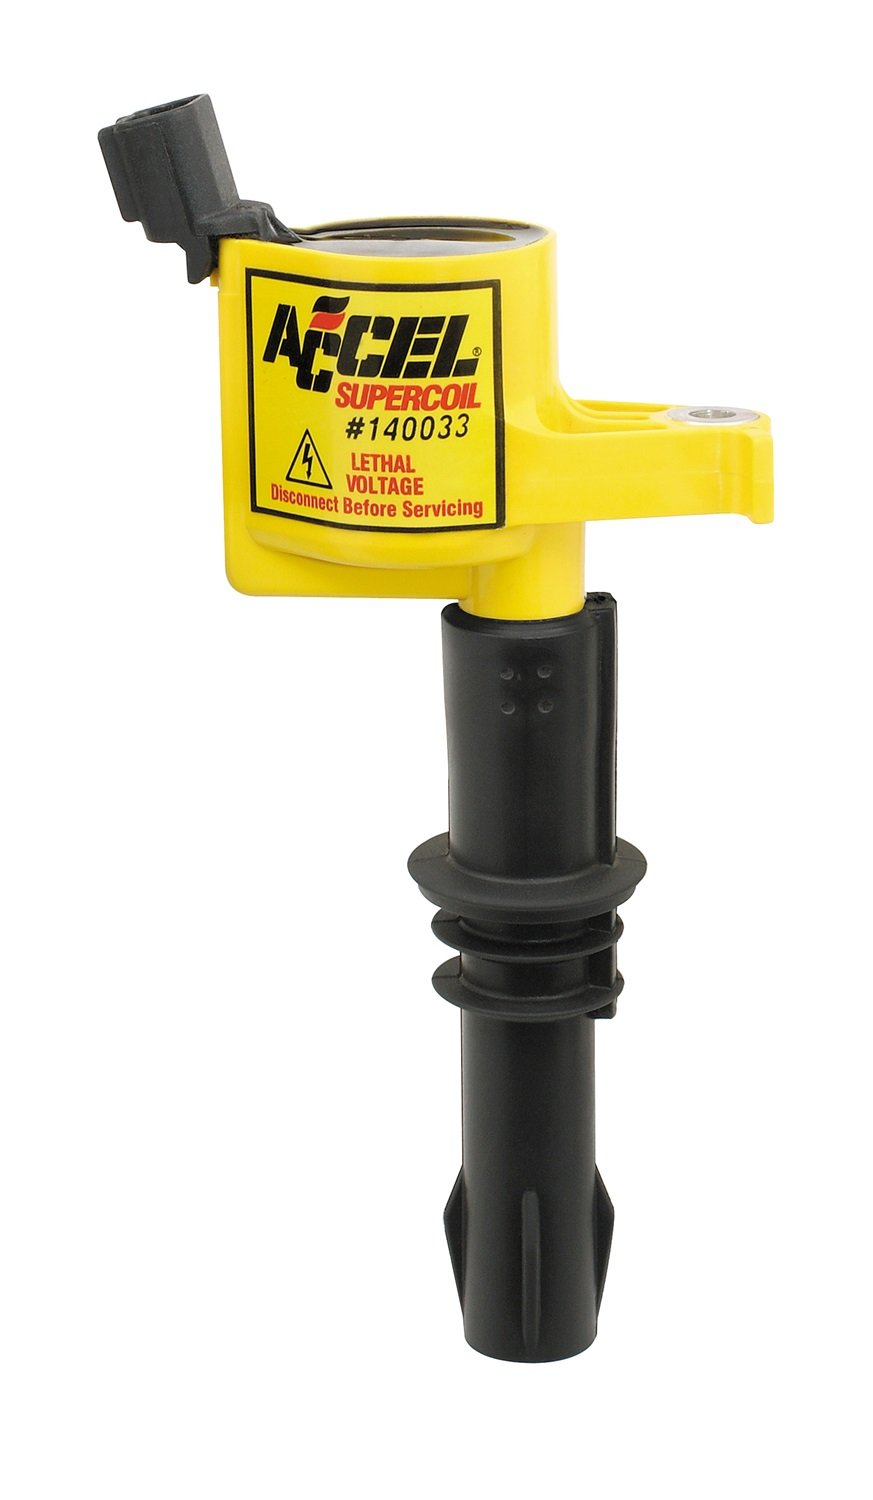 Accel 140033 Ignition Supercoil Automotive Still Stumped Time To Test The Coil Circuit